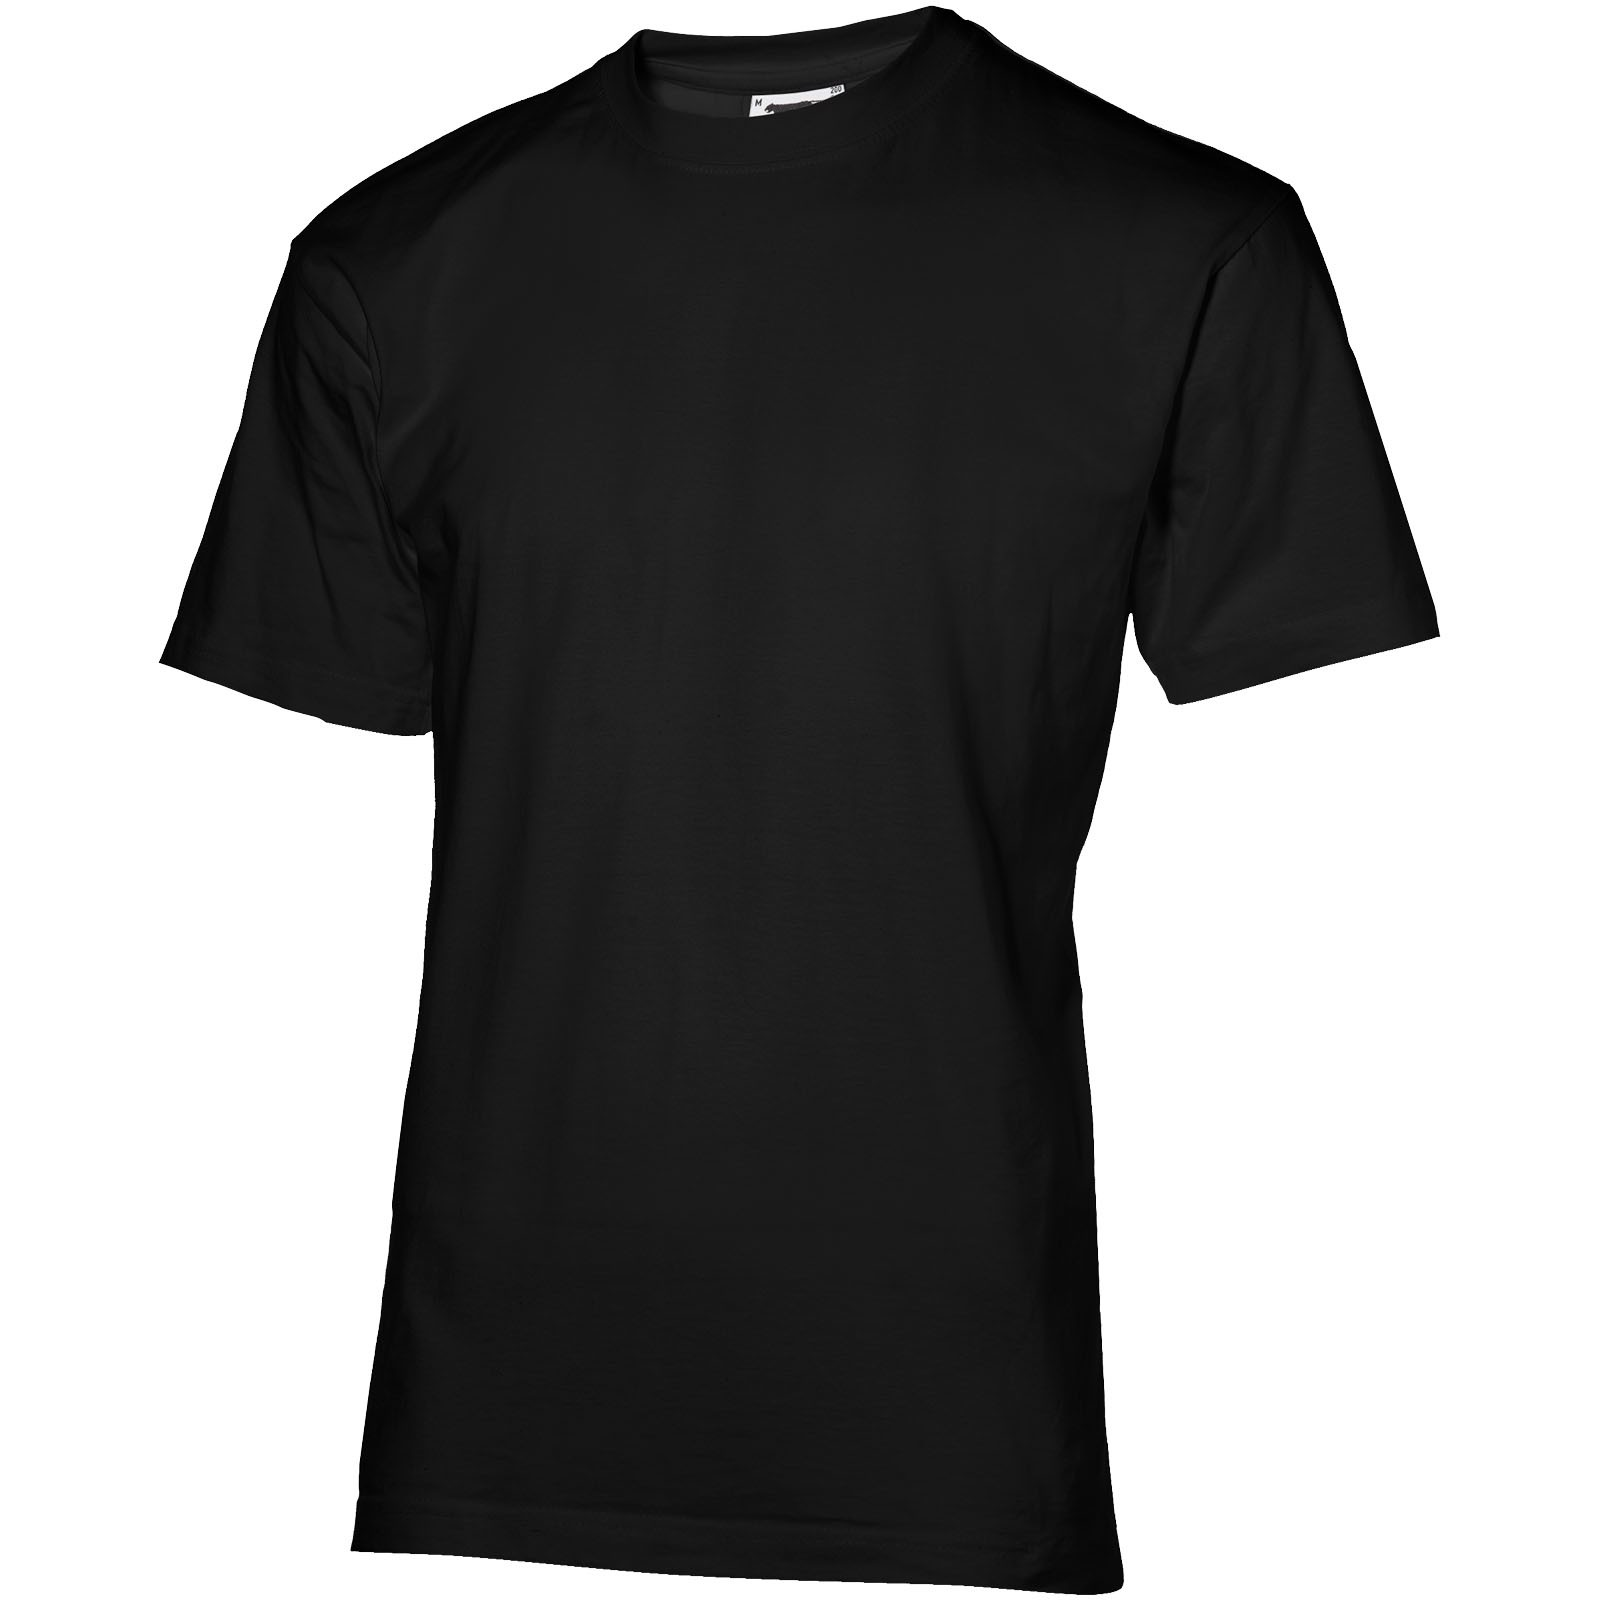 Return Ace short sleeve unisex t-shirt - Solid Black / M